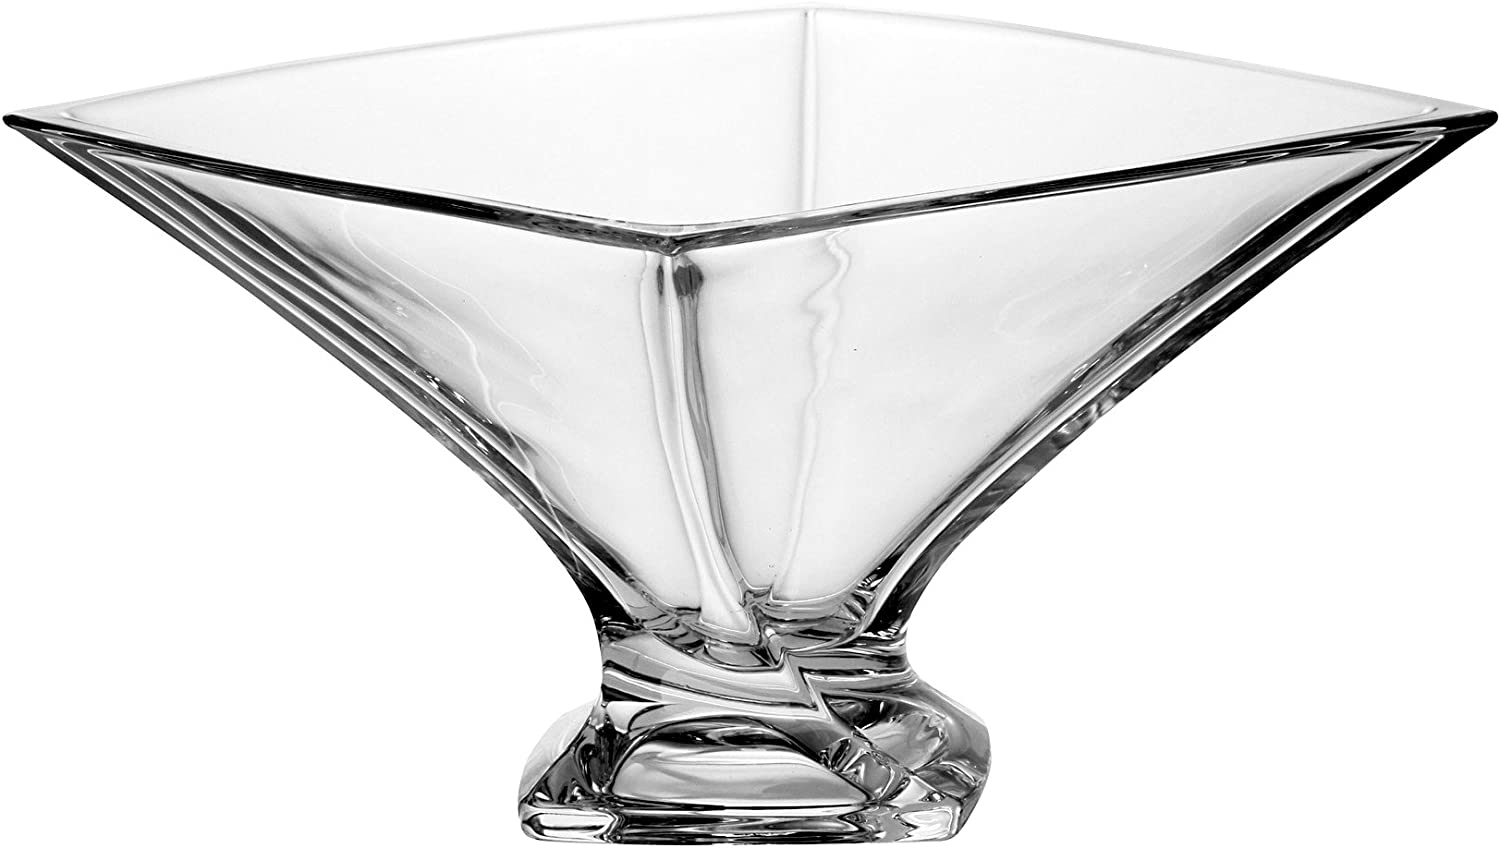 Barski - European Quality Glass - Lead Free - Crystalline - Square Footed Bowl - 6.5   Diameter - Made in Europe